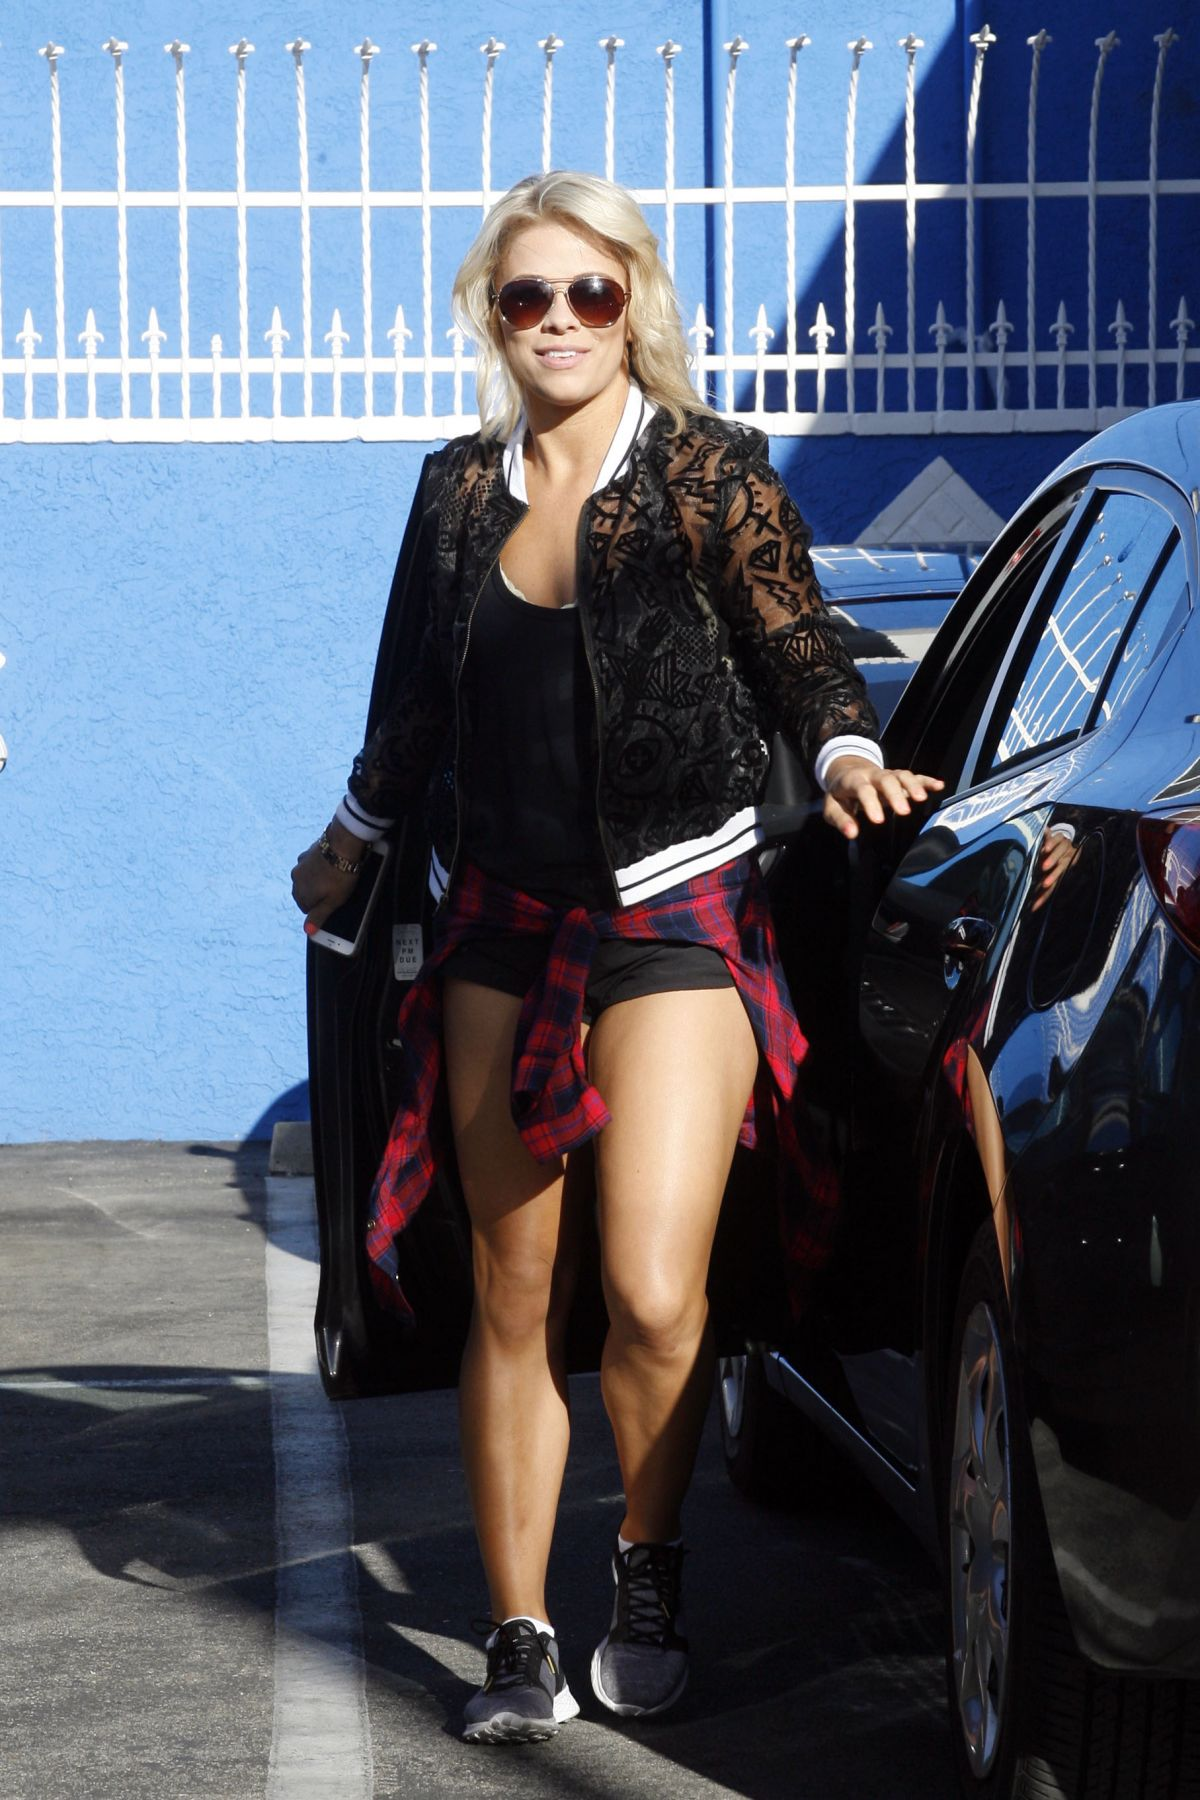 PAIGE VANZANT at Dancing with the Stars Rehersal in ...